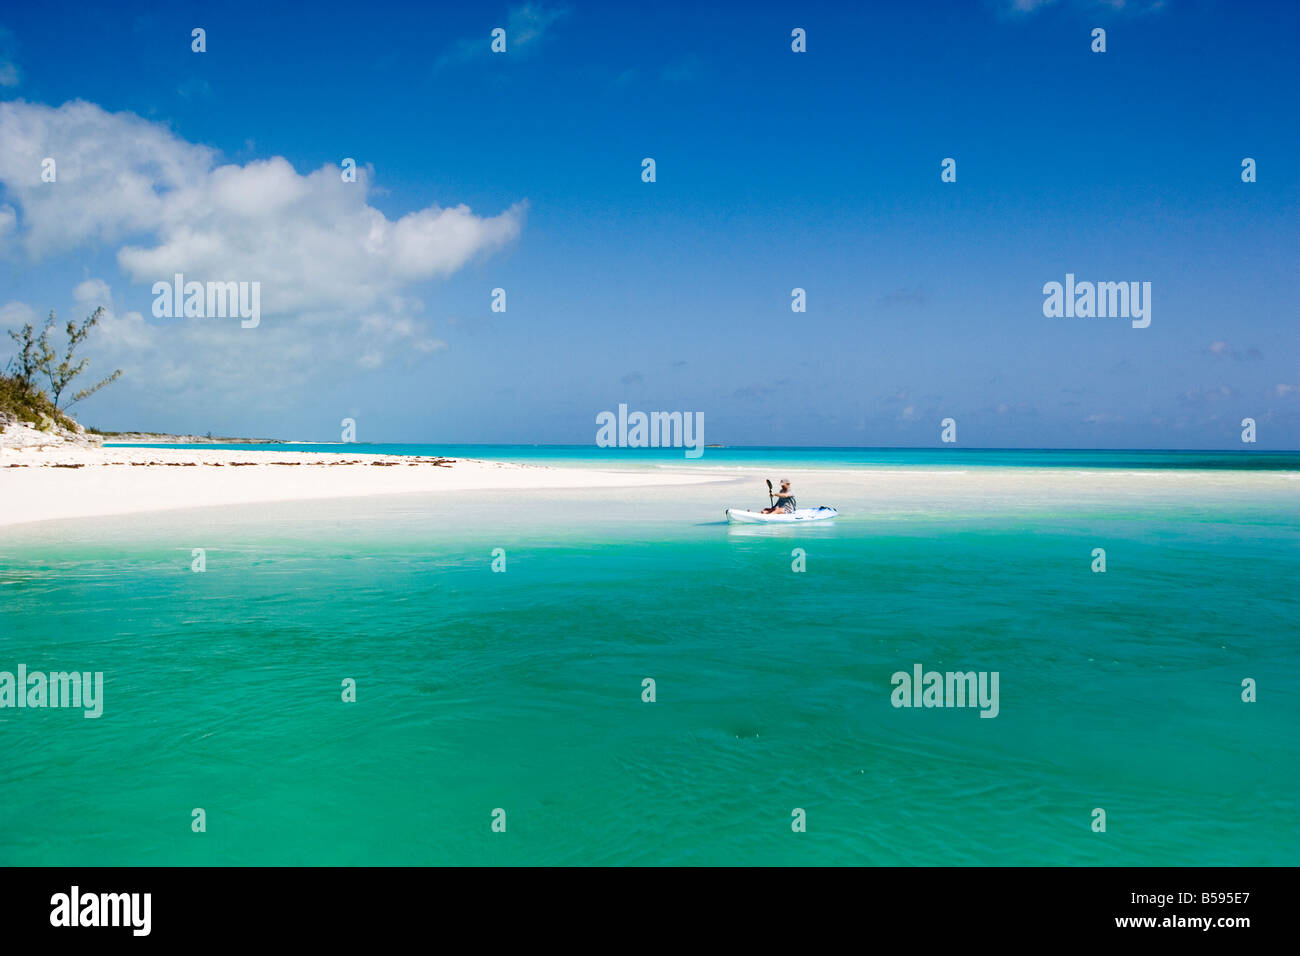 Crystal waters in the Bahamas Land Sea Park with kayak paddler - Stock Image